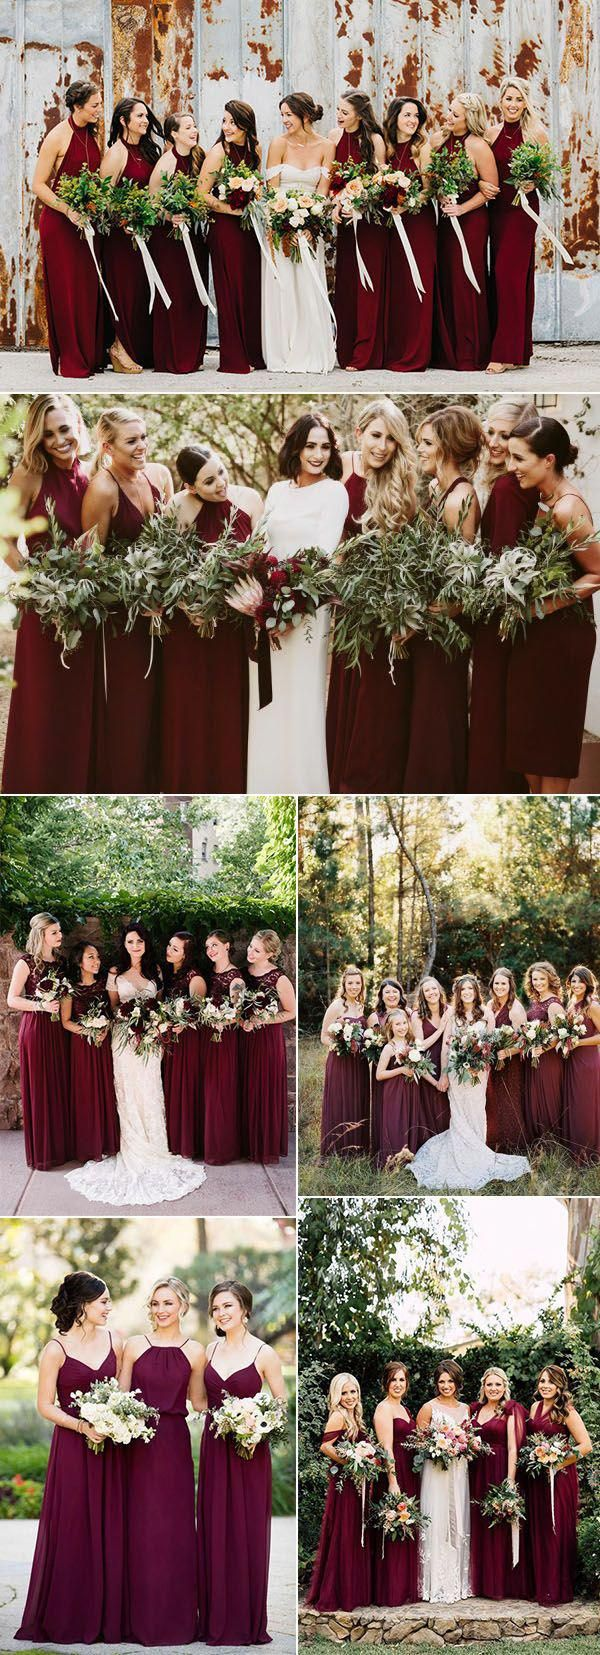 Vintage wedding decorations ideas november 2018 chic burgundy bridesmaid dresses ideas for fall weddings